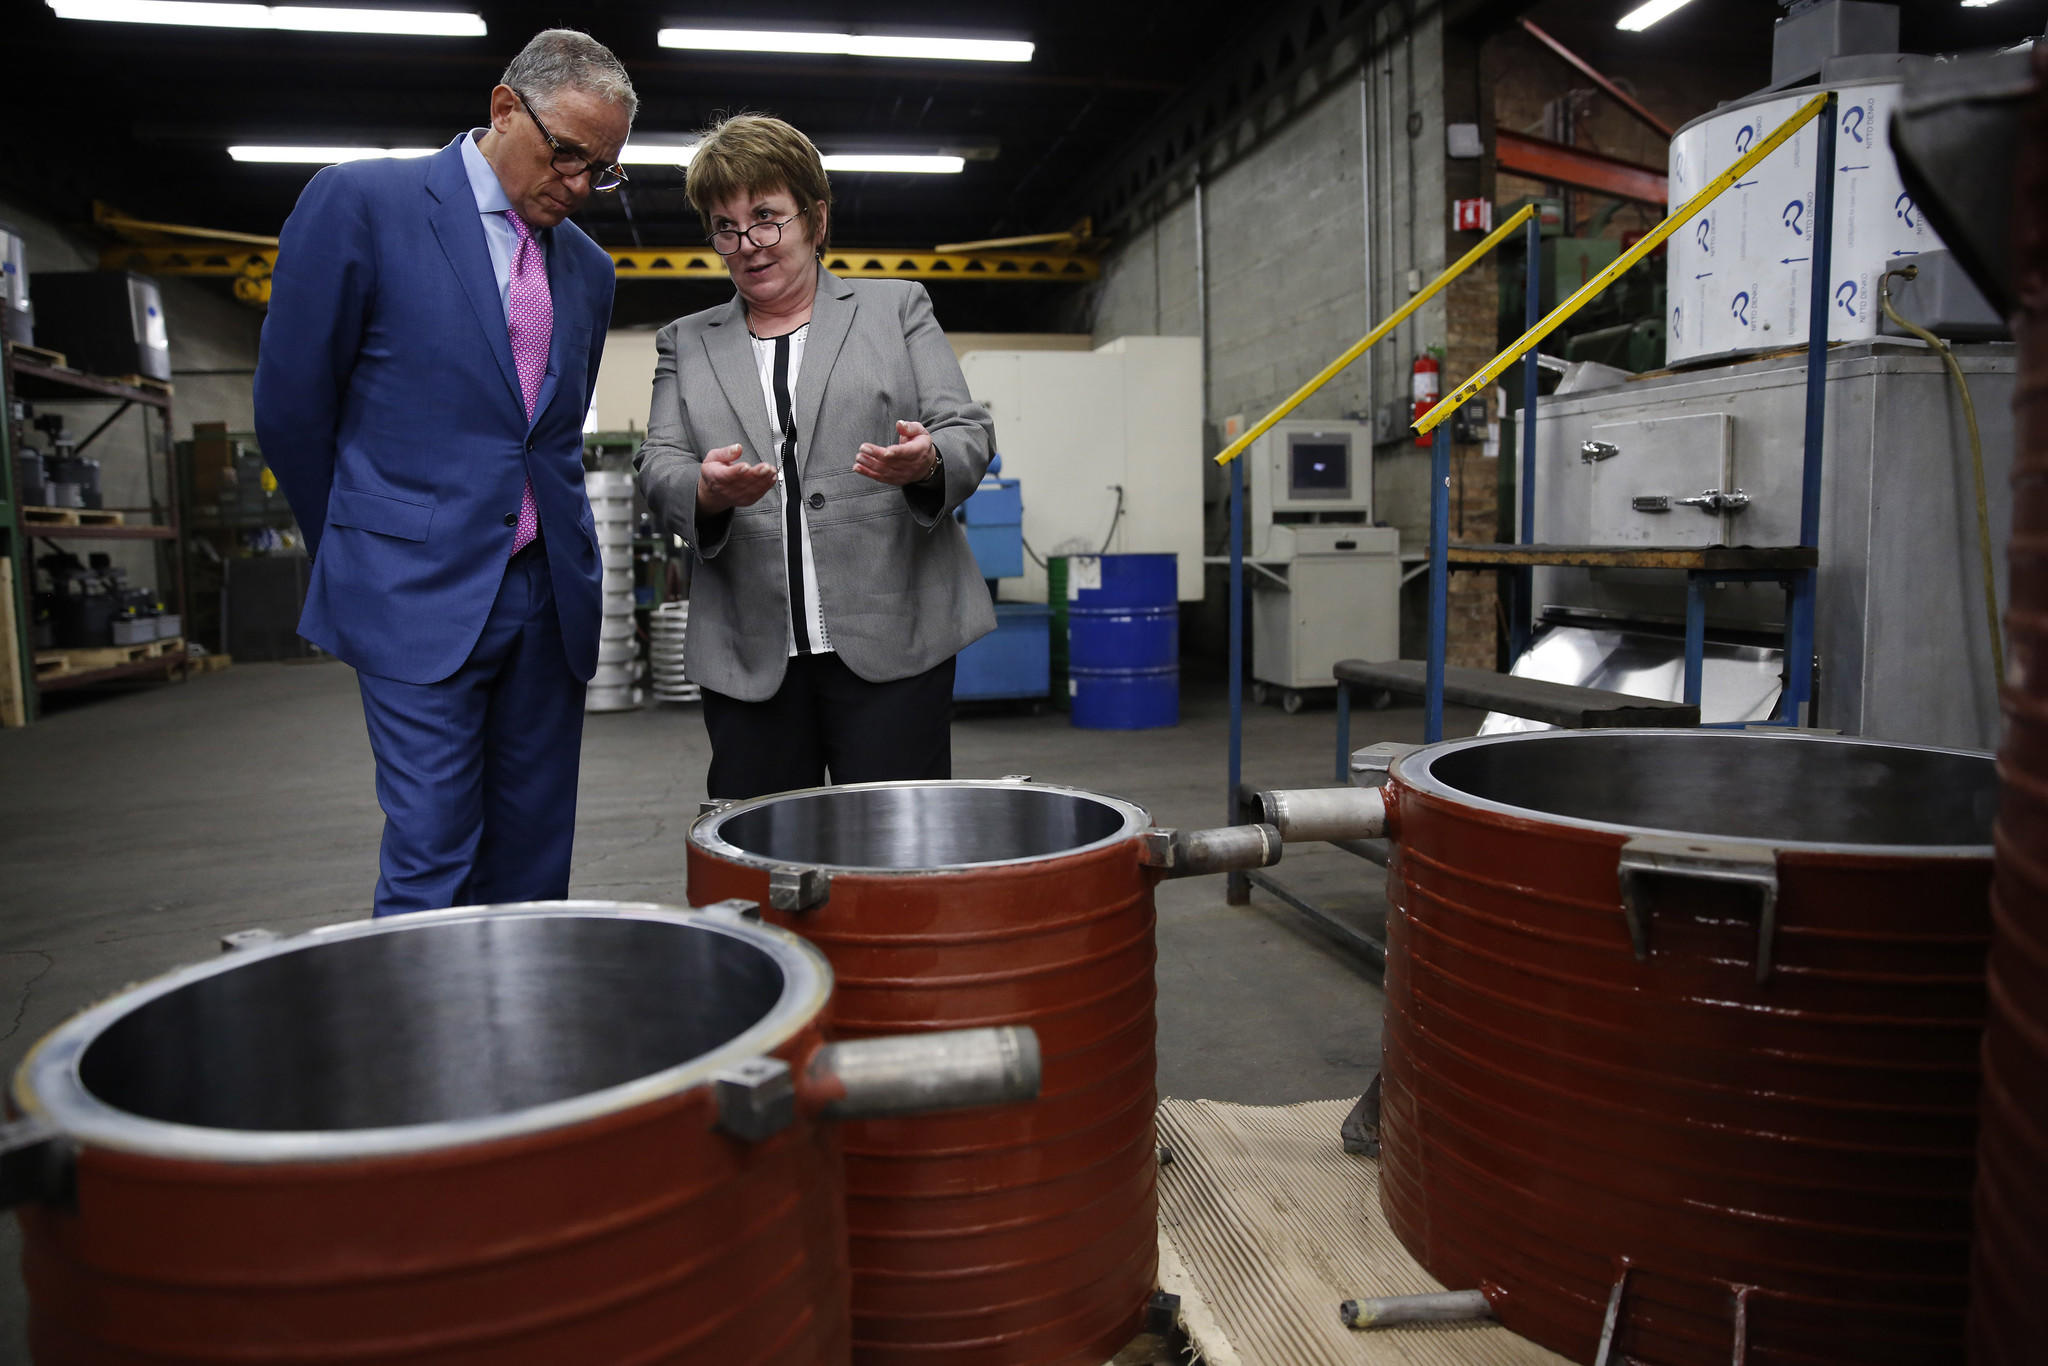 Fred Hochberg, left, Chairman and President of the Export-Import Bank of the United States, chats with Mary Howe, President of Howe Corporation, who is giving a tour of the manufacturing facility of Howe Corporation located at 1650 N. Elston Ave. in Chicago and talking about the evaporators for the refrigerant units made at the facility seen here on Wednesday, June 11, 2014. Howe Corporation is a 4th-generation family-owned Chicago small business that exports refrigeration equipment with the support of Ex-Im Bank.